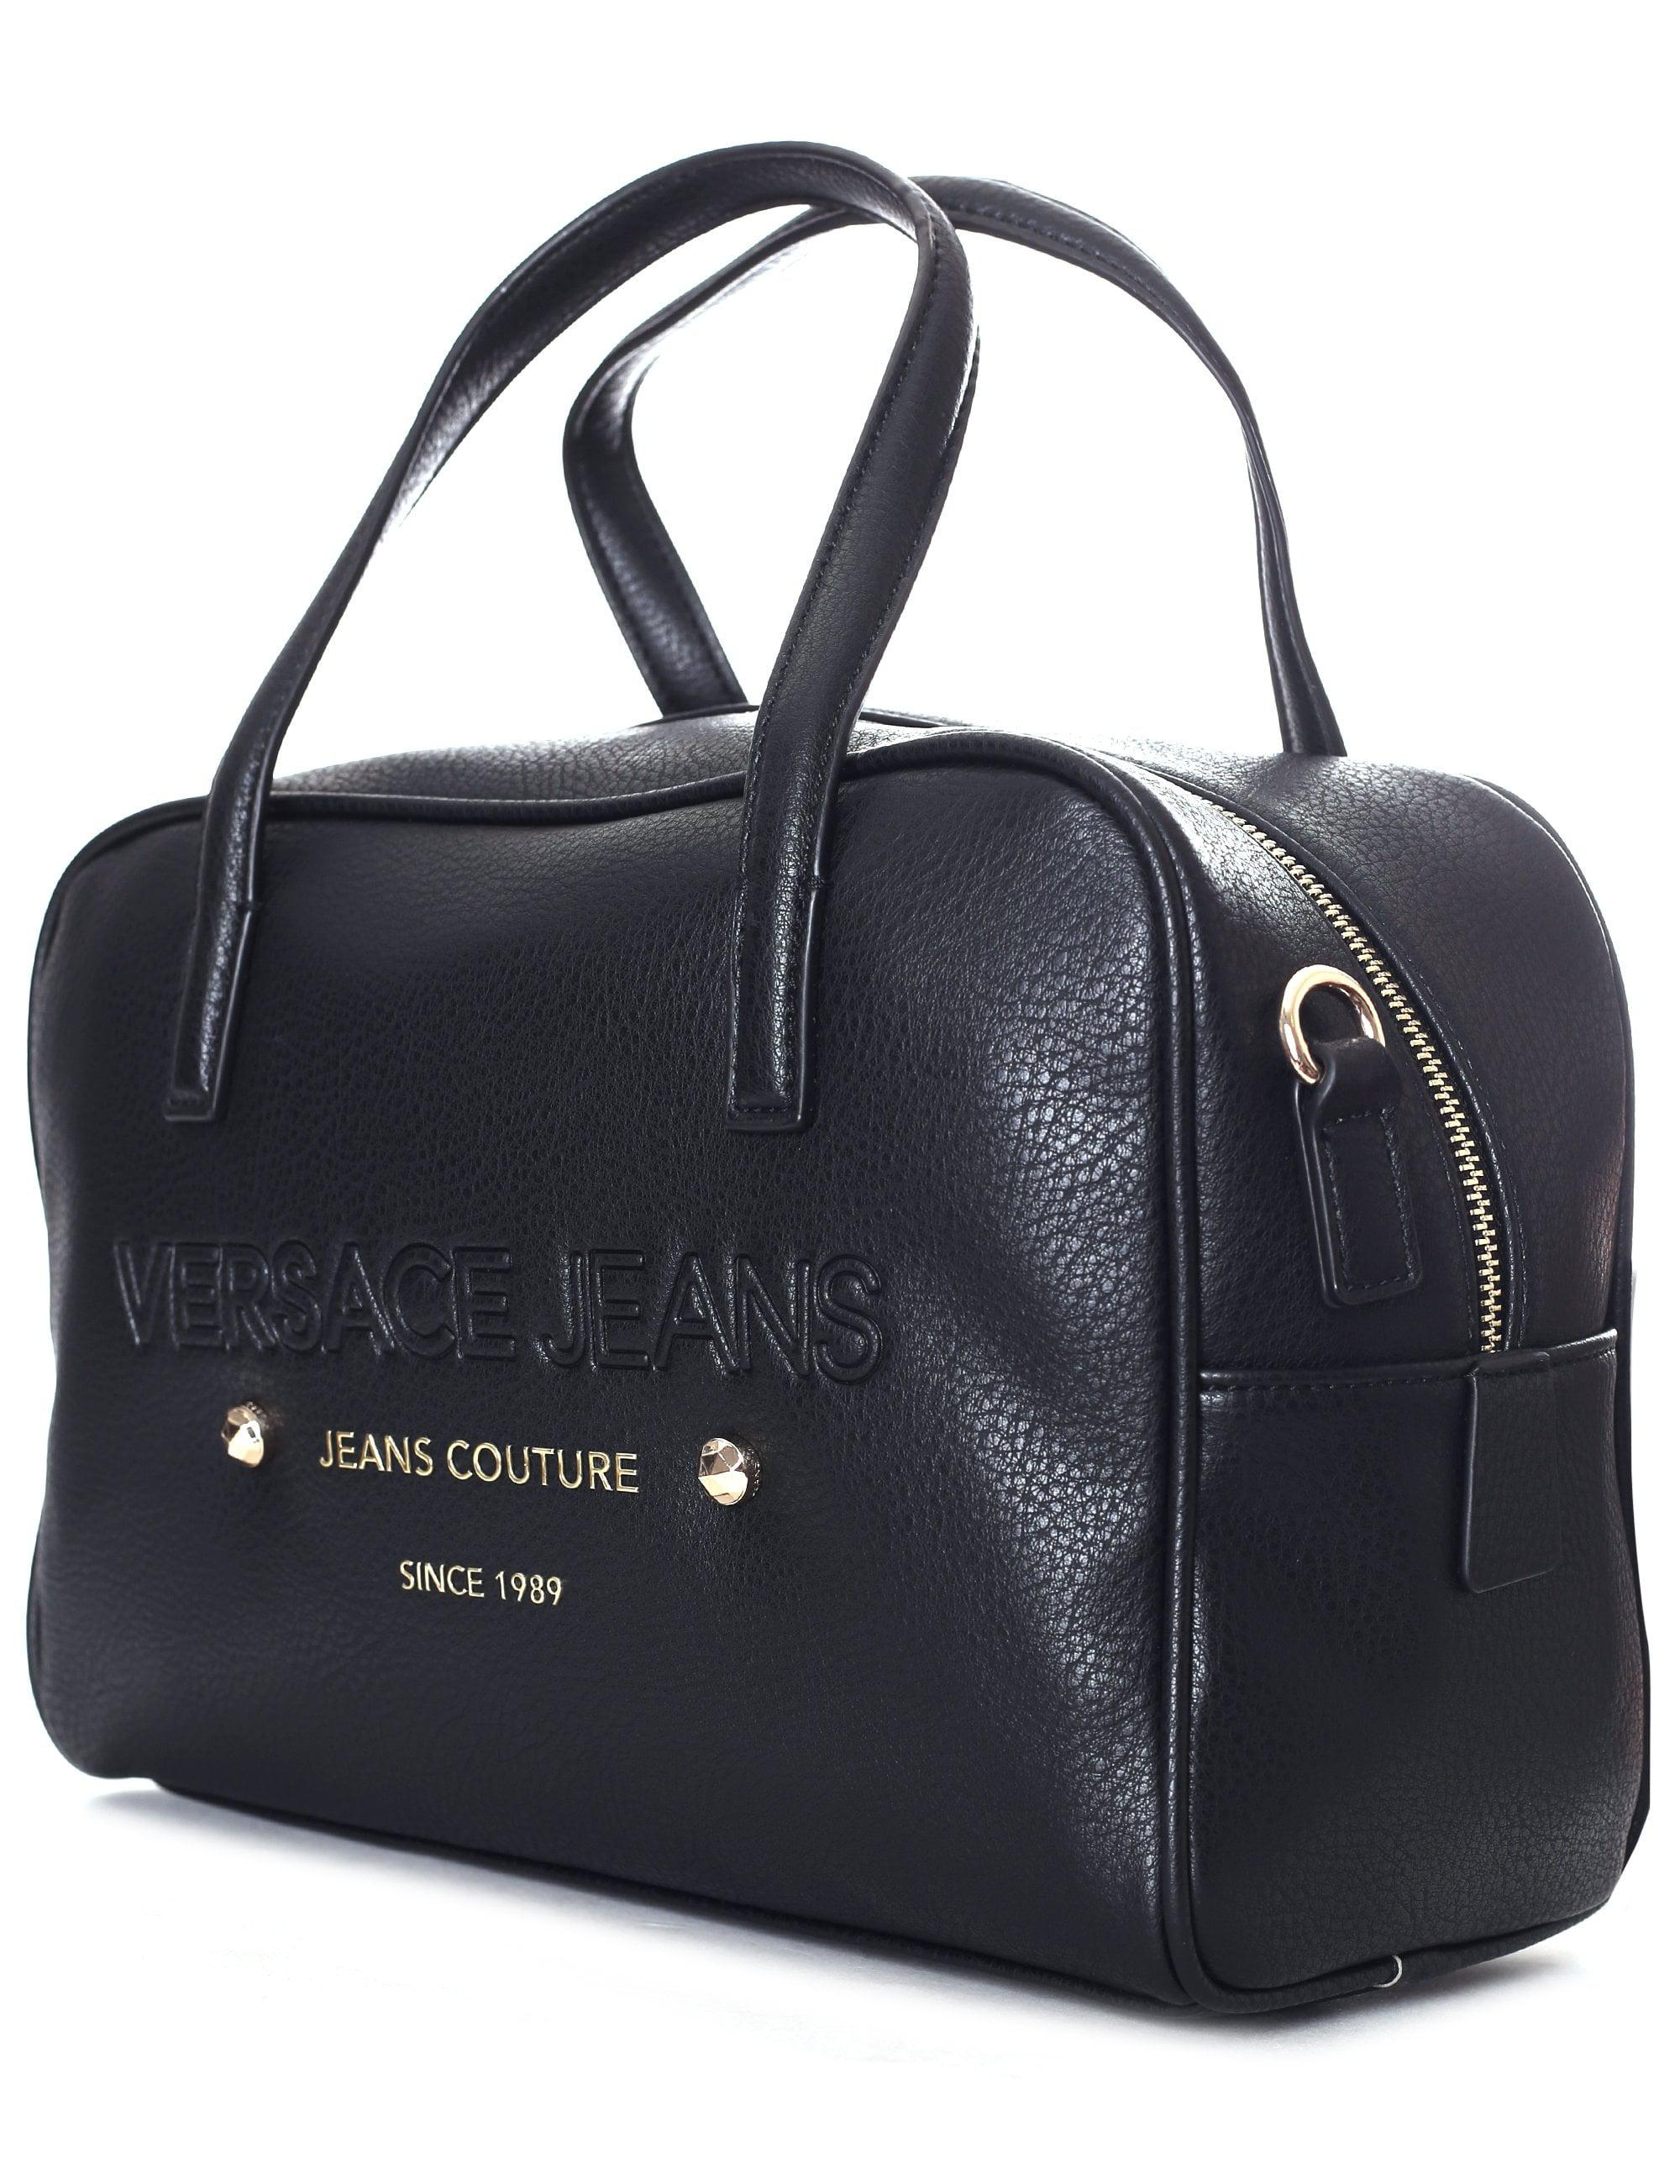 83bf1d6acad49 Versace Jeans Couture Bowling Bag in Black - Lyst